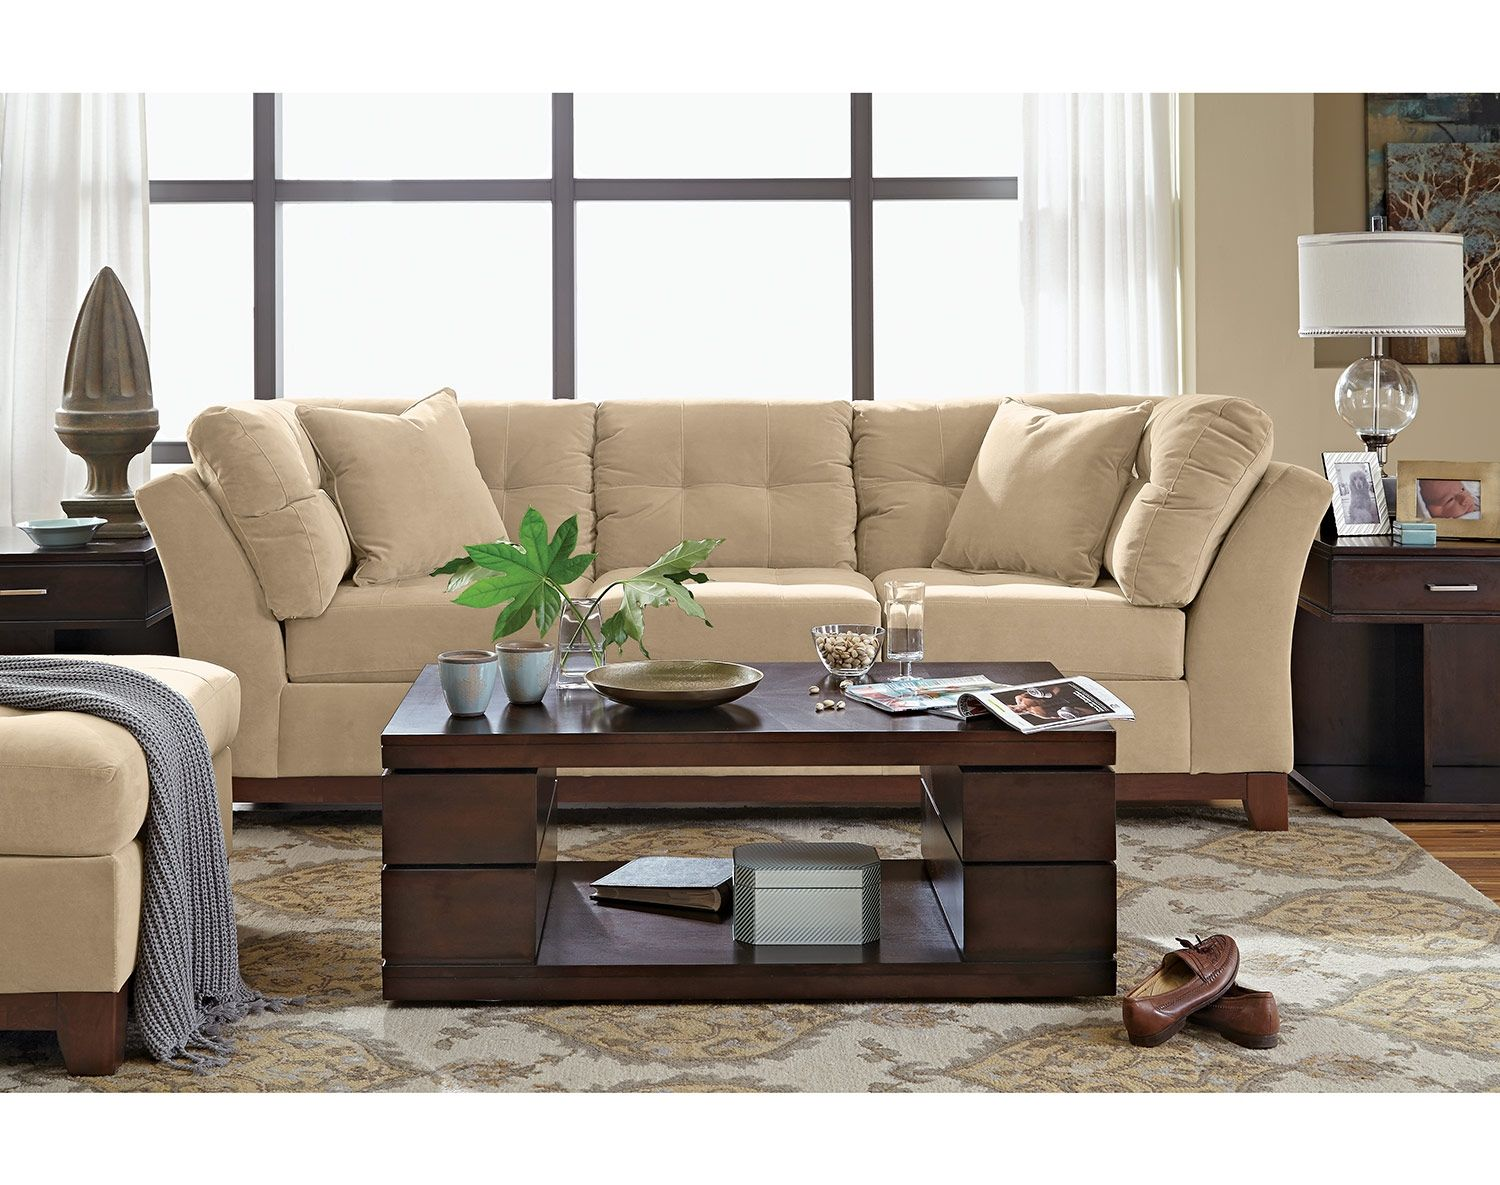 Best The Solace Cocoa Collection Value City Furniture 640 x 480